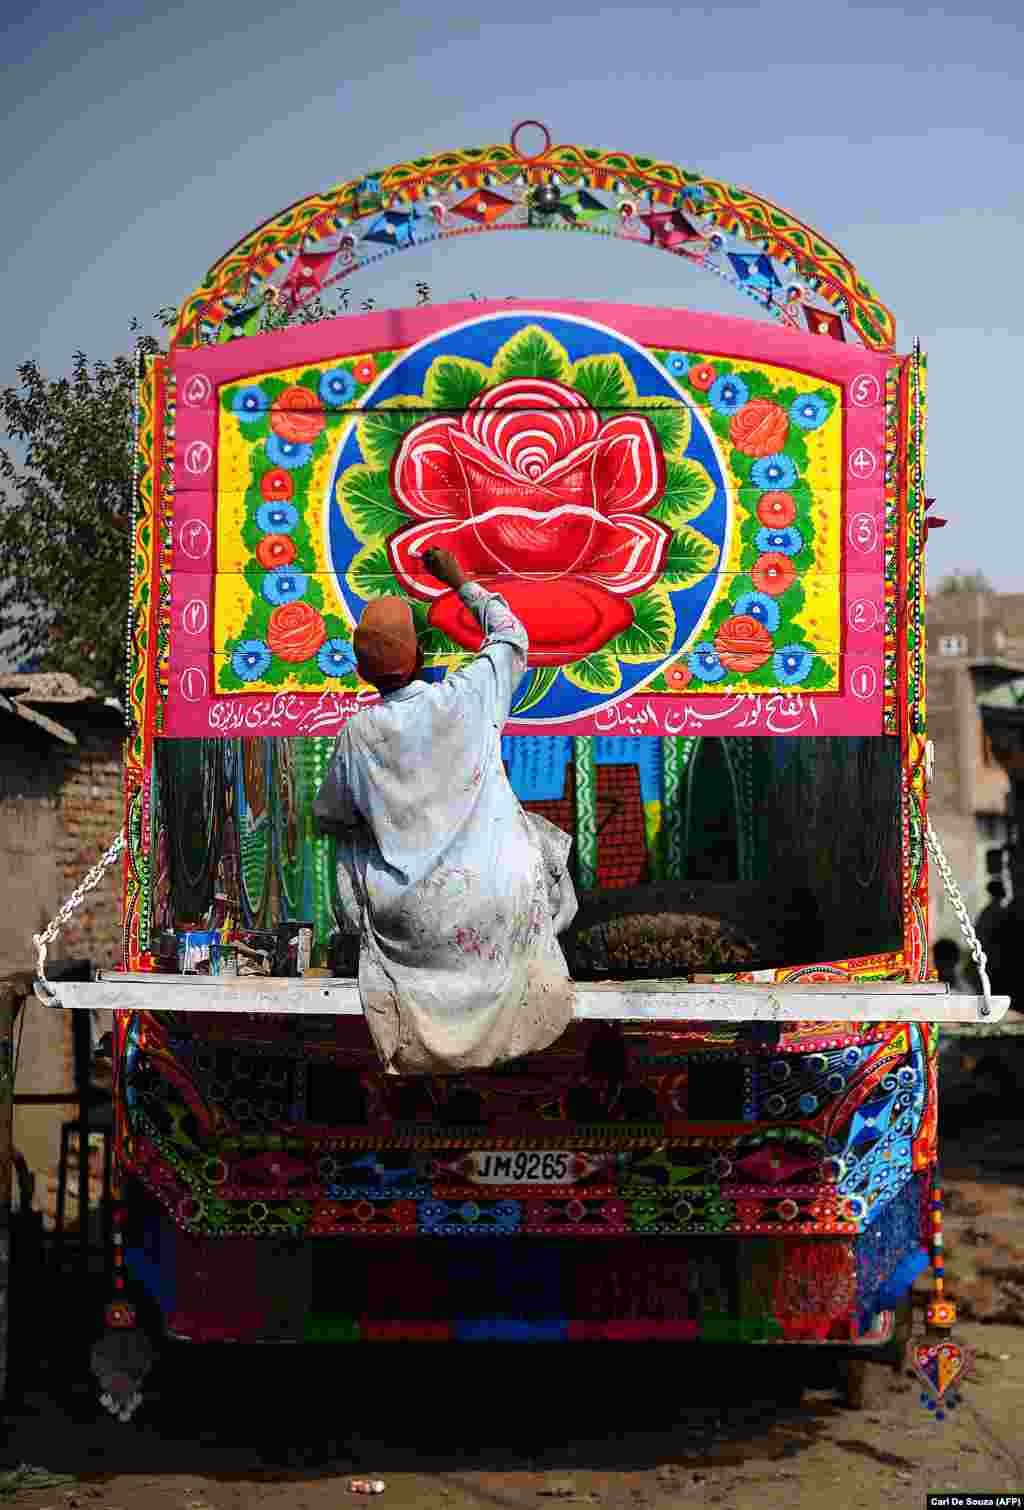 A truck painter adds the finishing touches to the bodywork of a truck in Rawalpindi. The trucks of Pakistan may be known for color, but they remain hard-working vehicles.